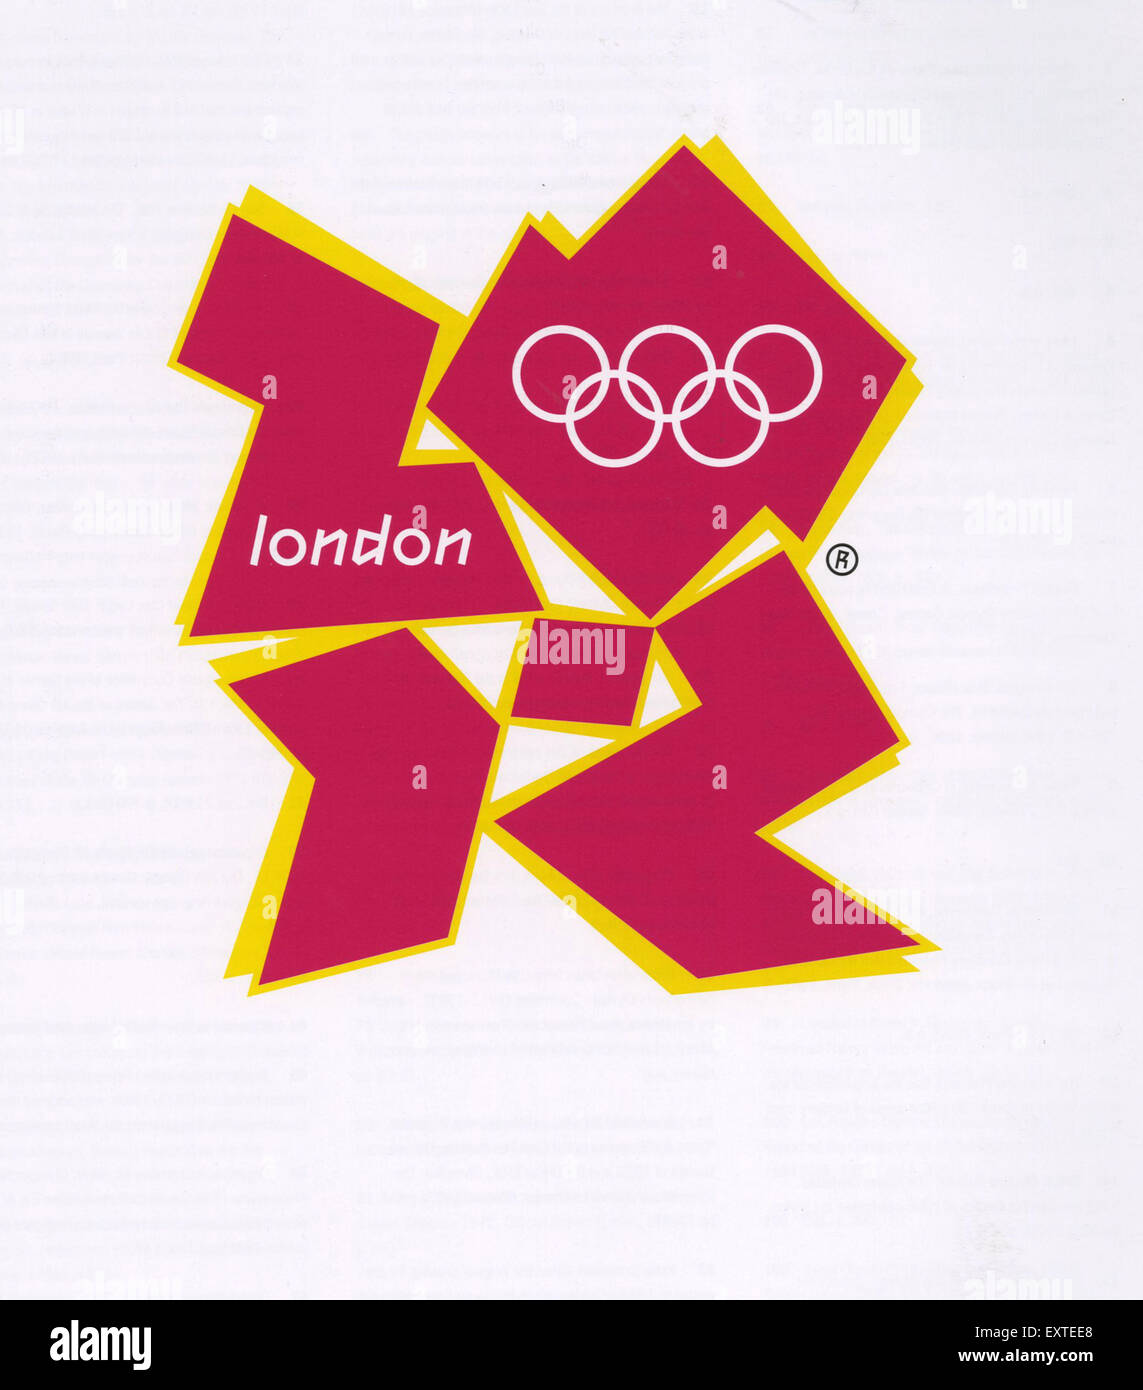 2000s UK Olympic Games Poster - Stock Image